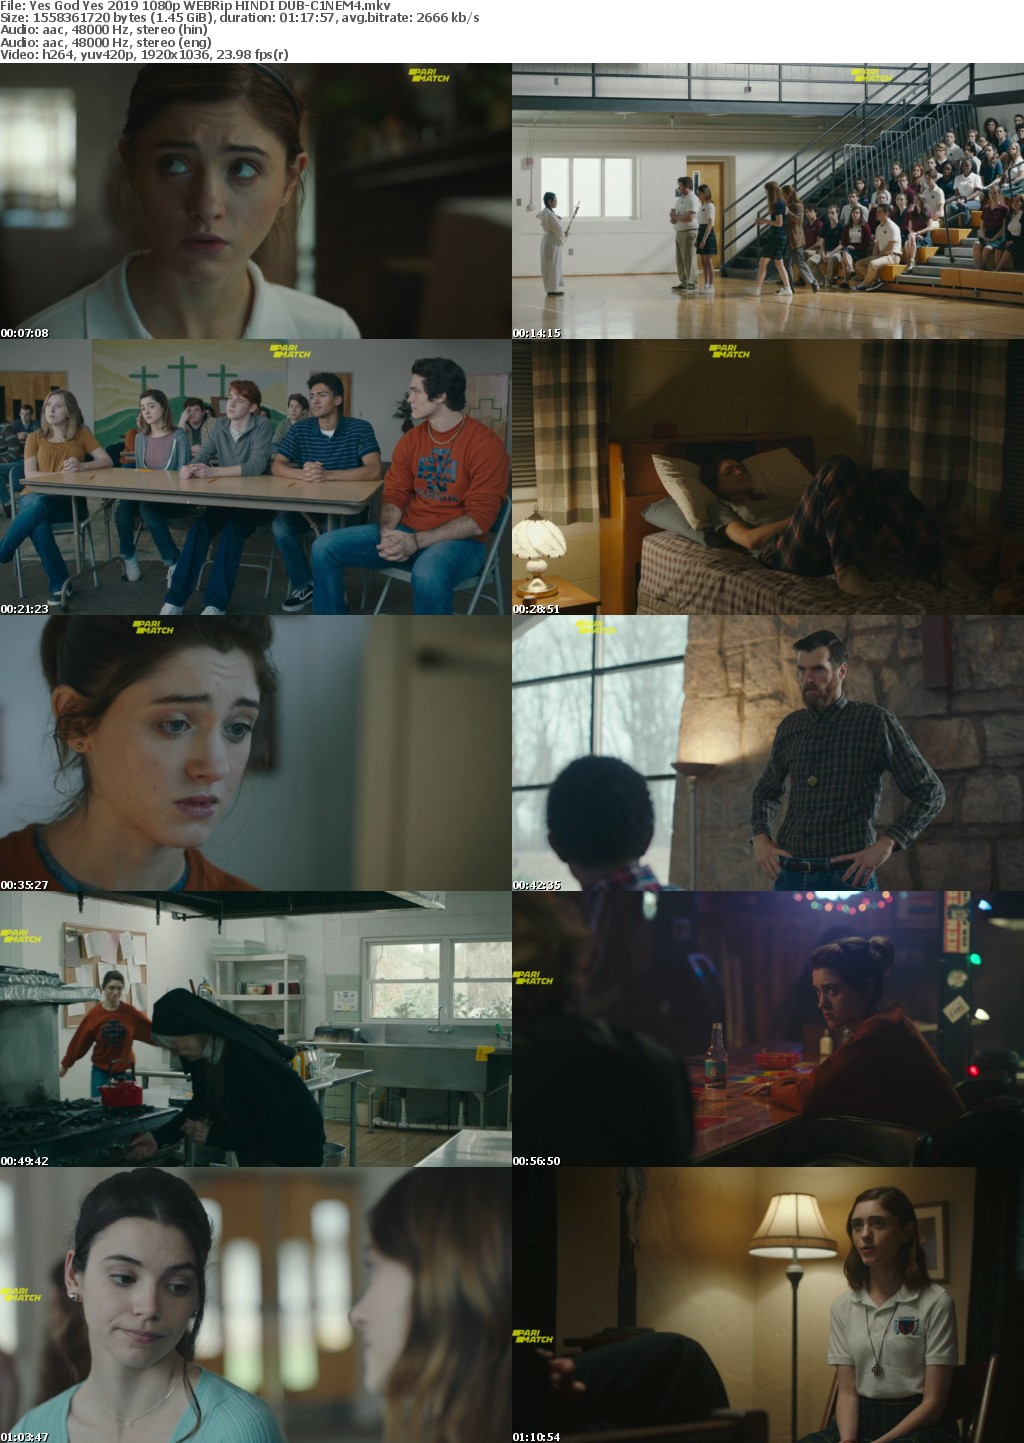 Yes God Yes 2019 1080p WEBRip HINDI DUB-C1NEM4